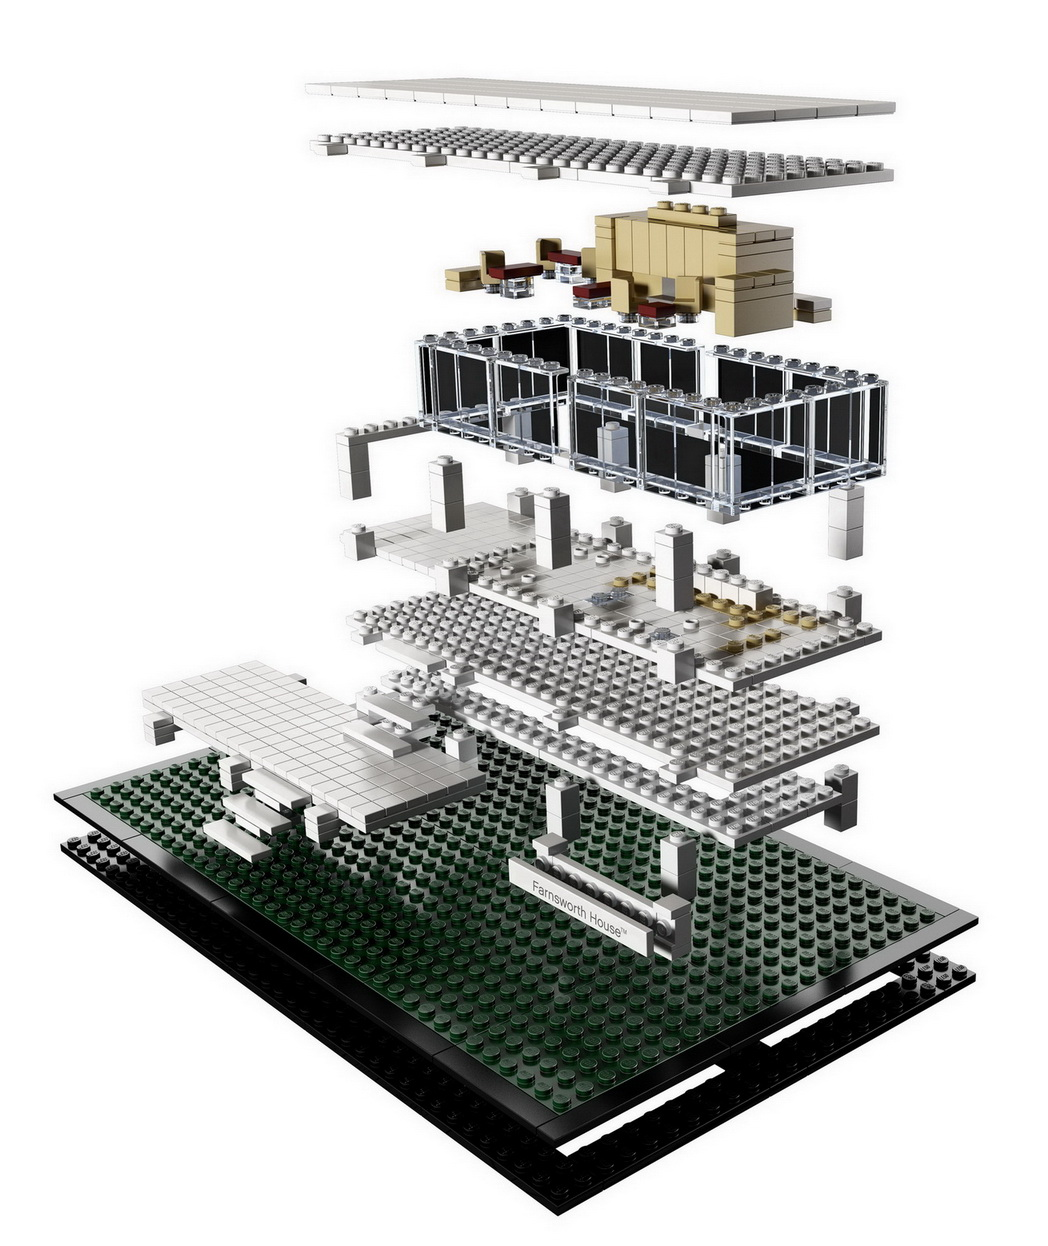 lego architecture farnsworth houses water legos sets building modern exploded google rainy project inside database falling diagrams creations visit read